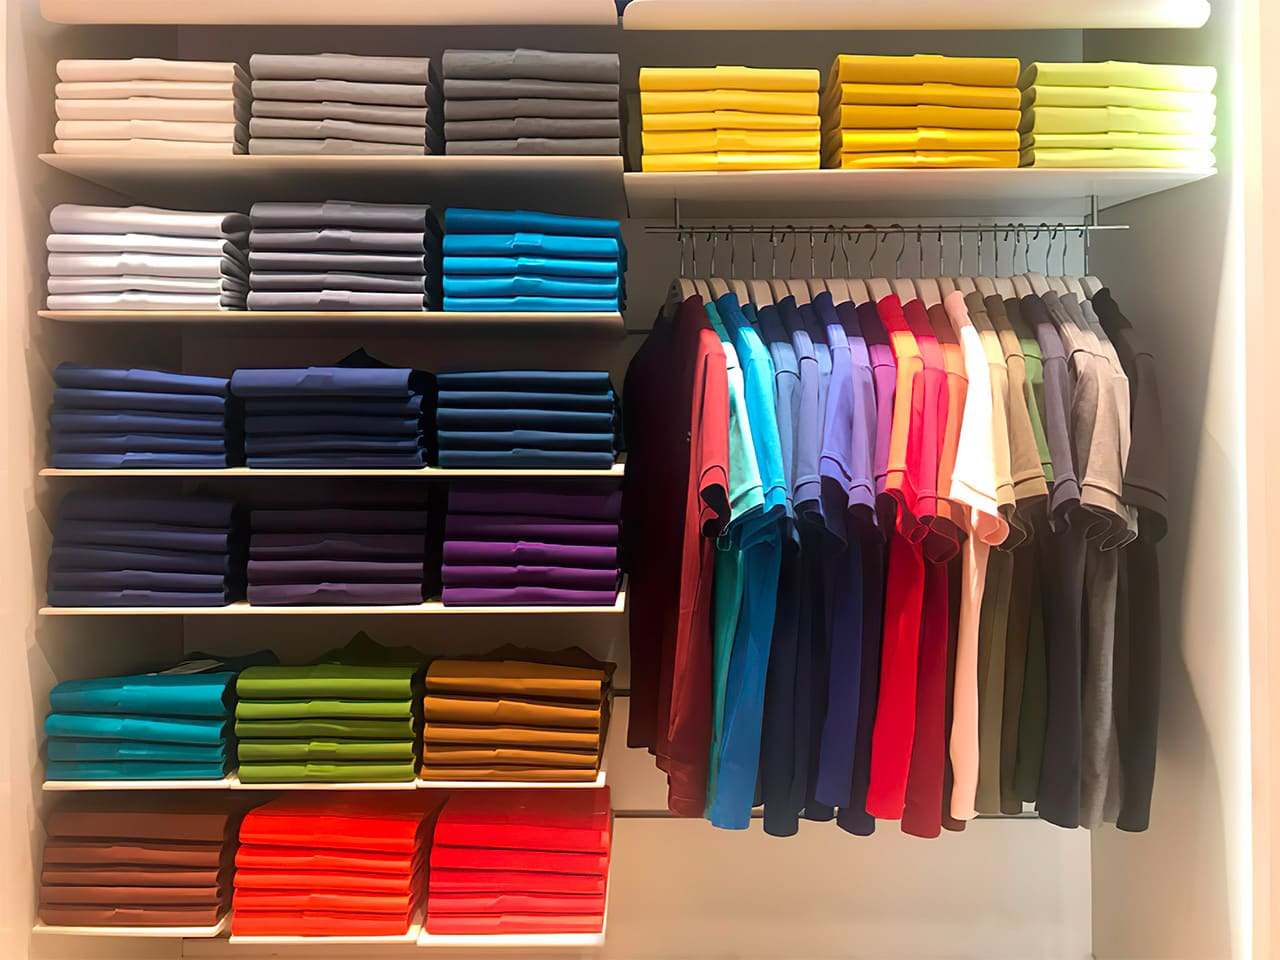 Ralph Lauren Polo shirts in 24 colors